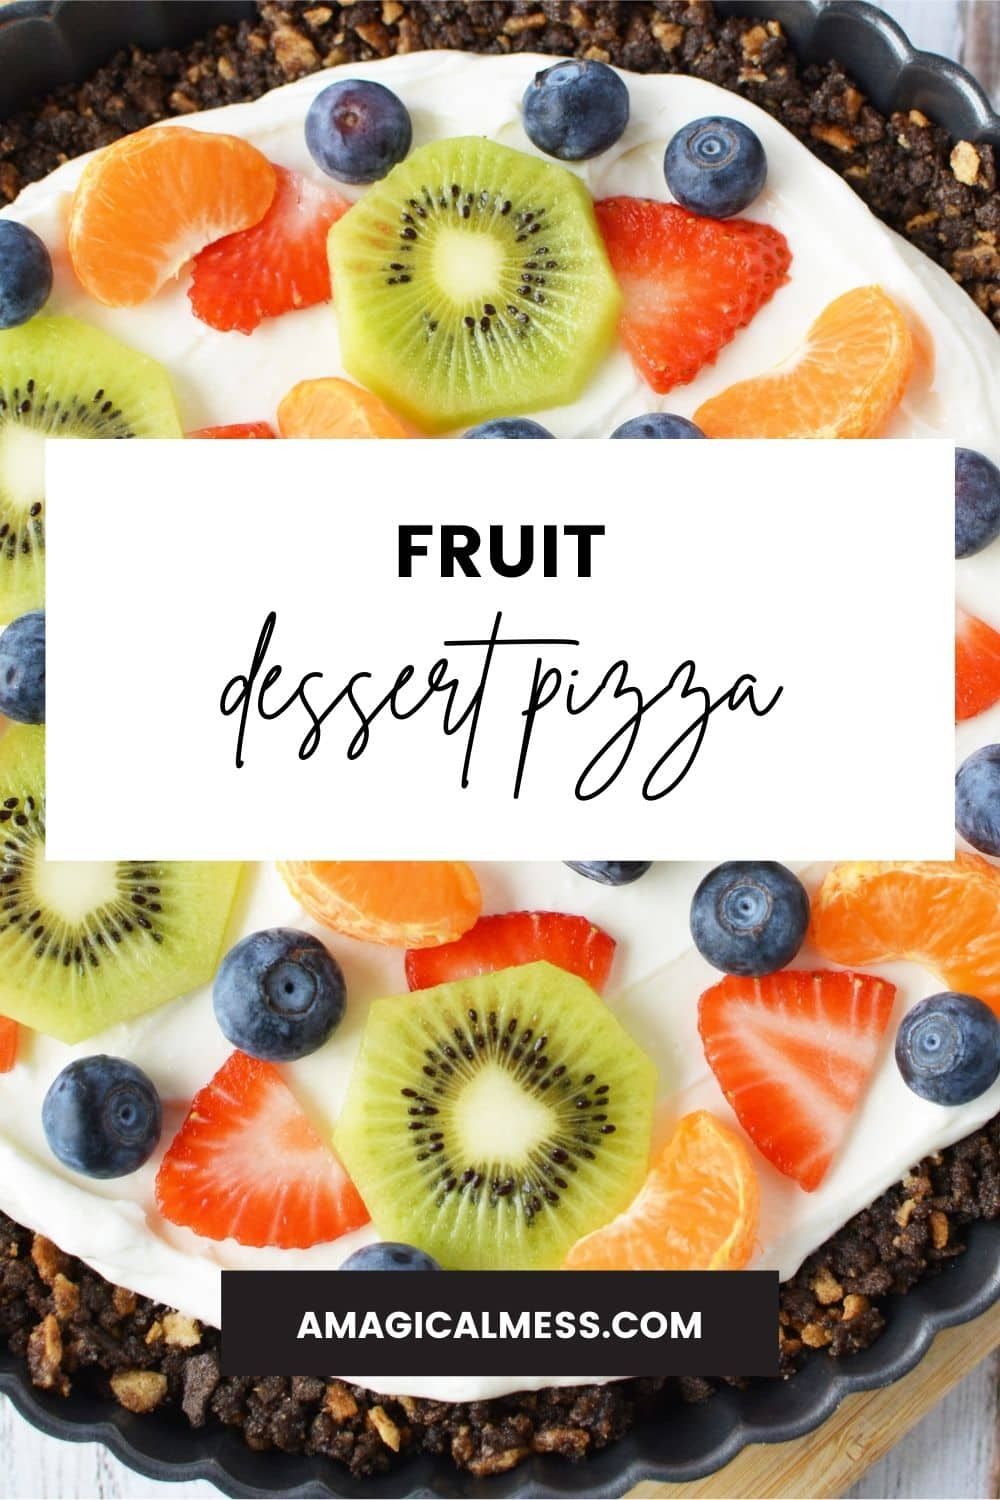 Slices of kiwi, strawberries, and other fruit on a tart.